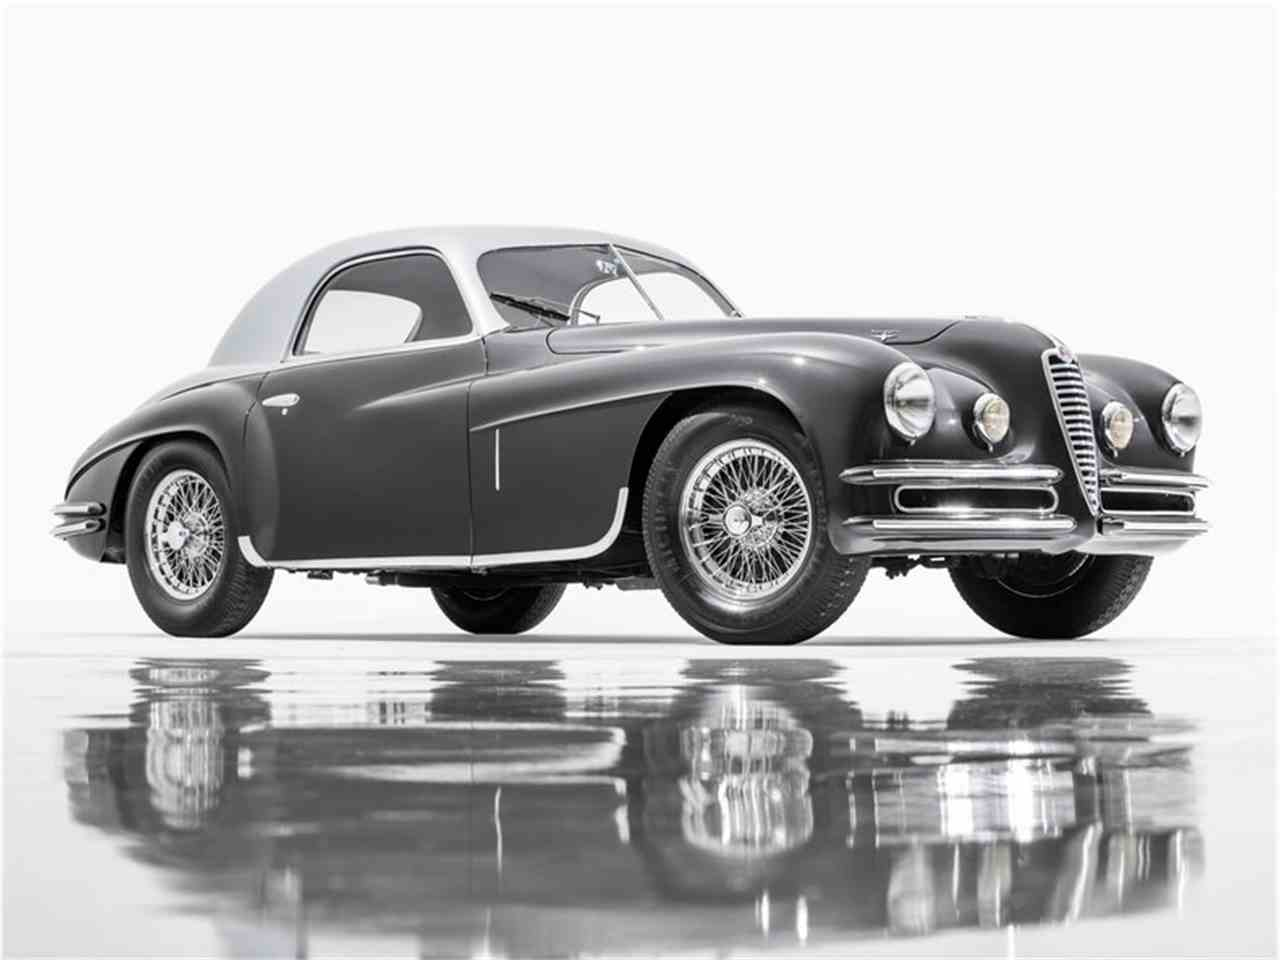 Large Picture of 1949 Alfa Romeo 6C 2500 SSC Auction Vehicle Offered by Morris and Welford - MZAQ